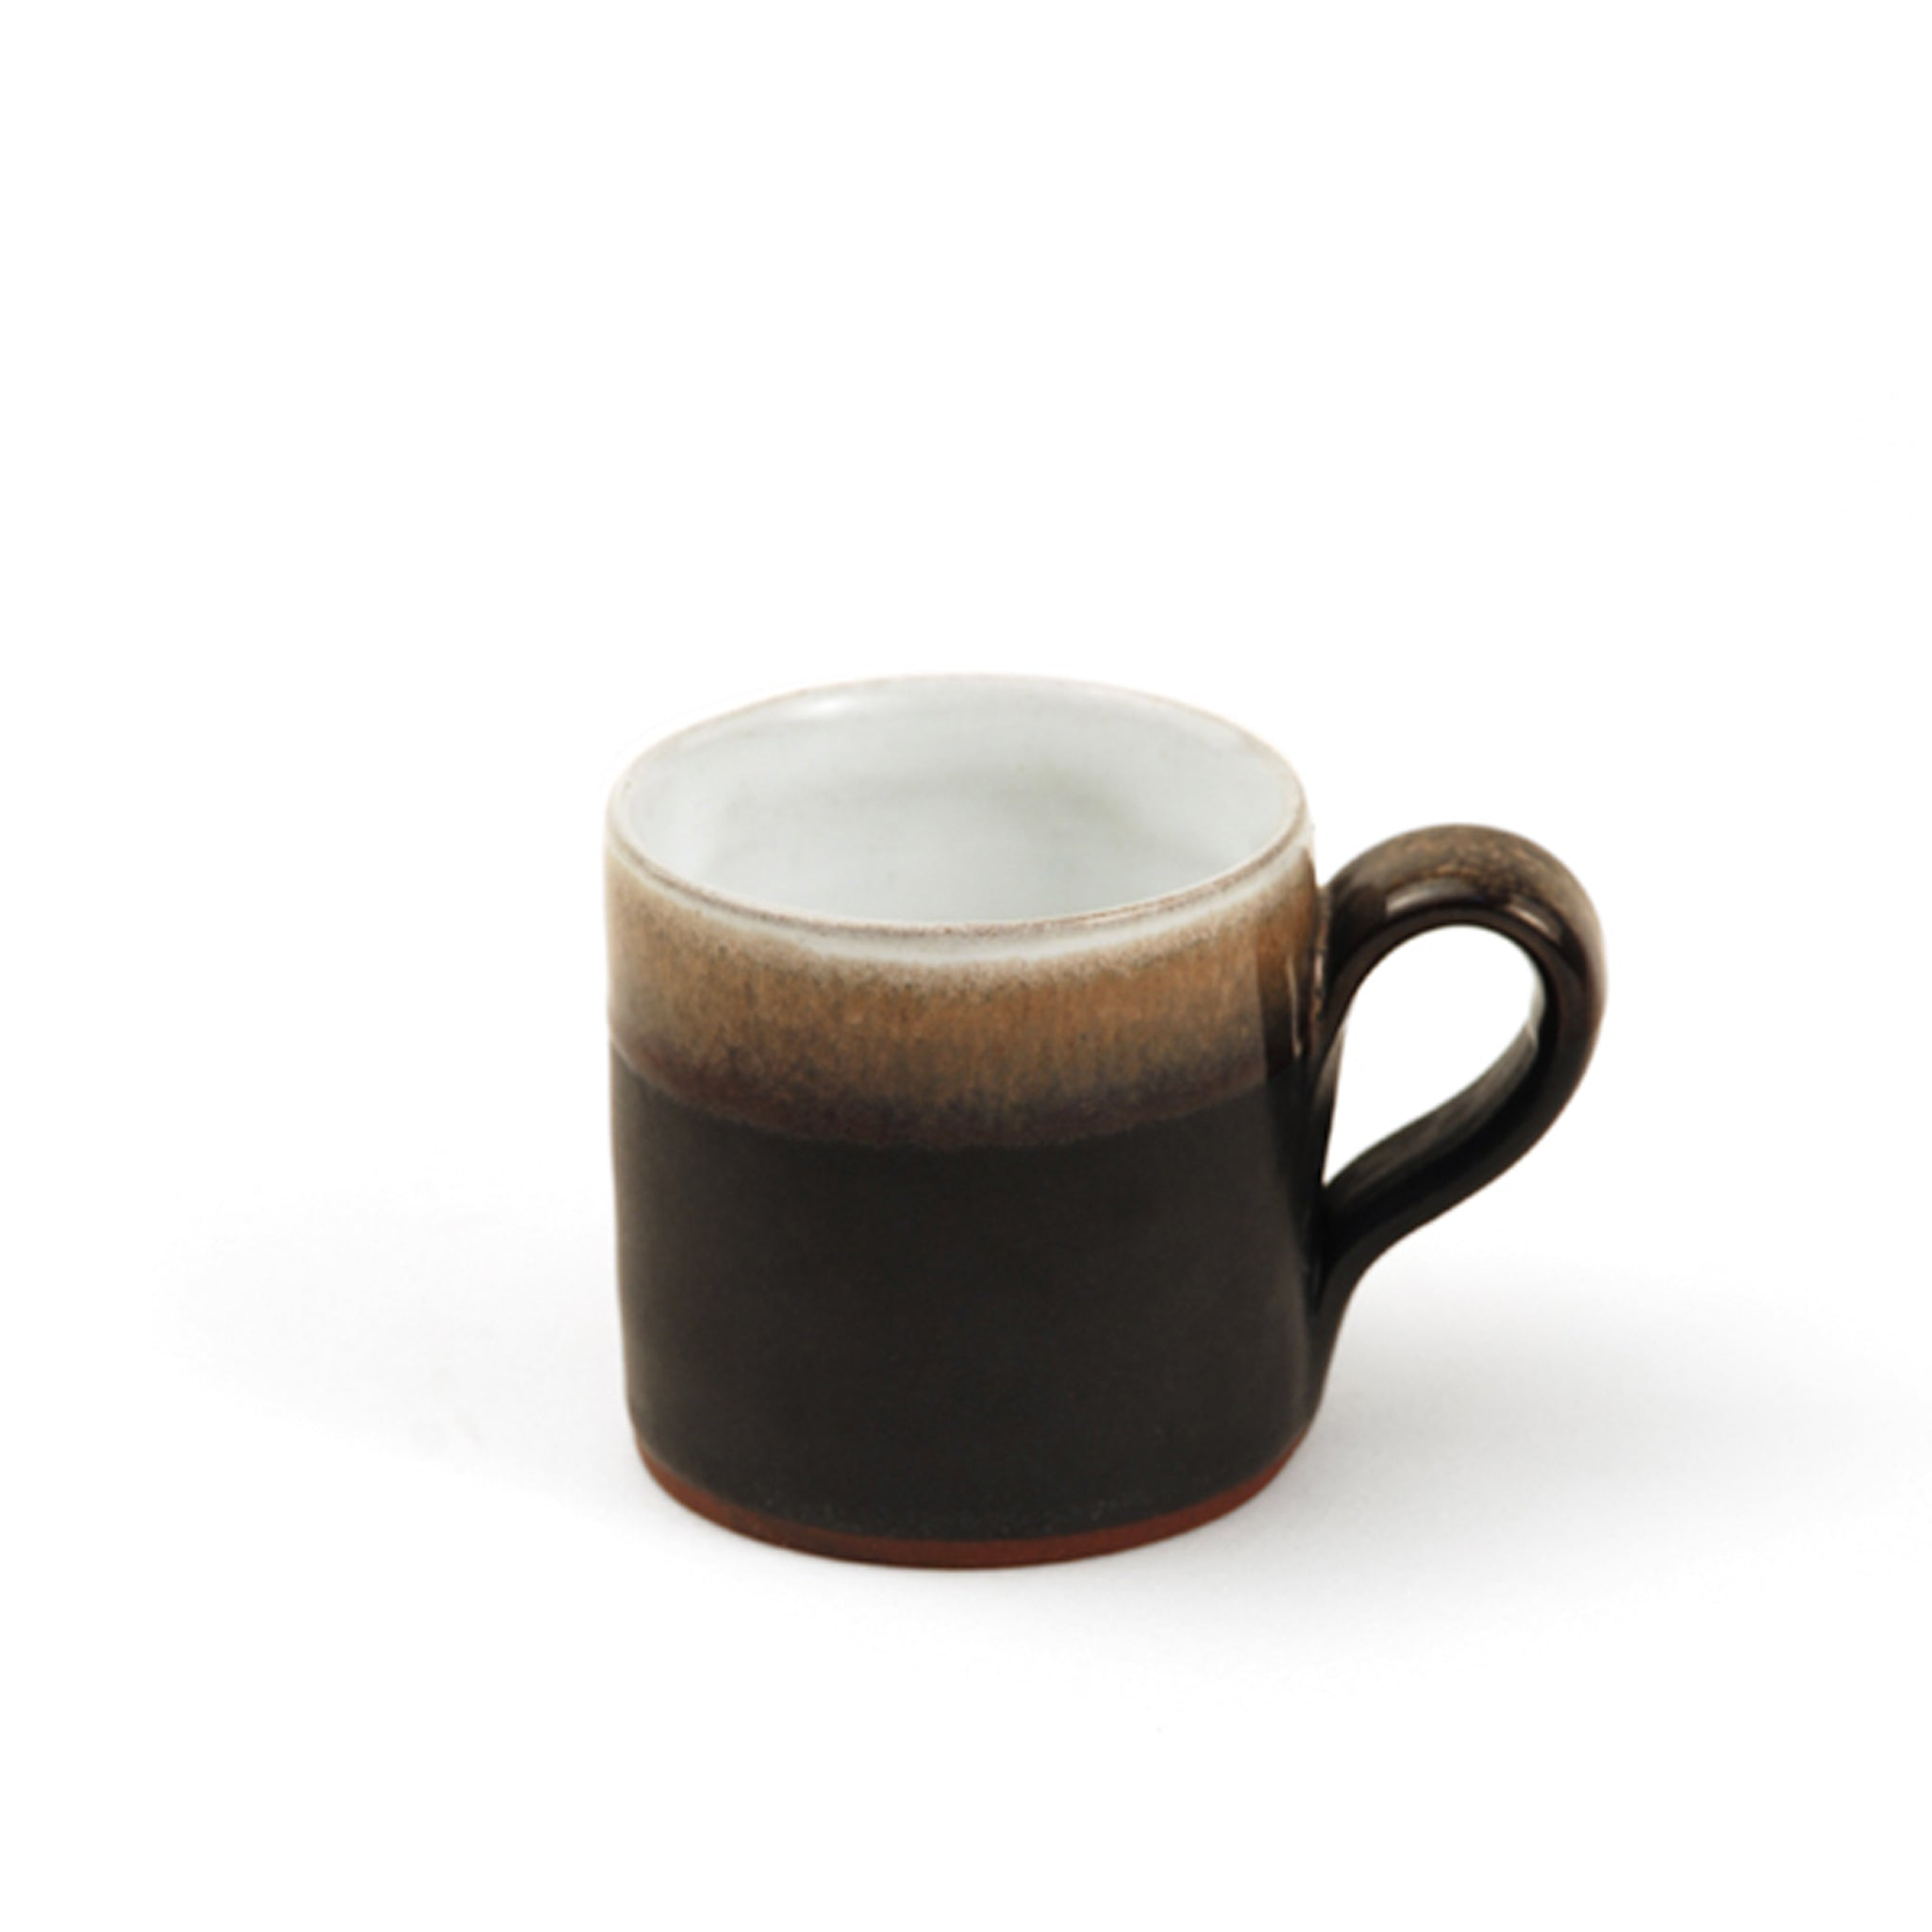 Shanagarry Coffee Cup (4oz)